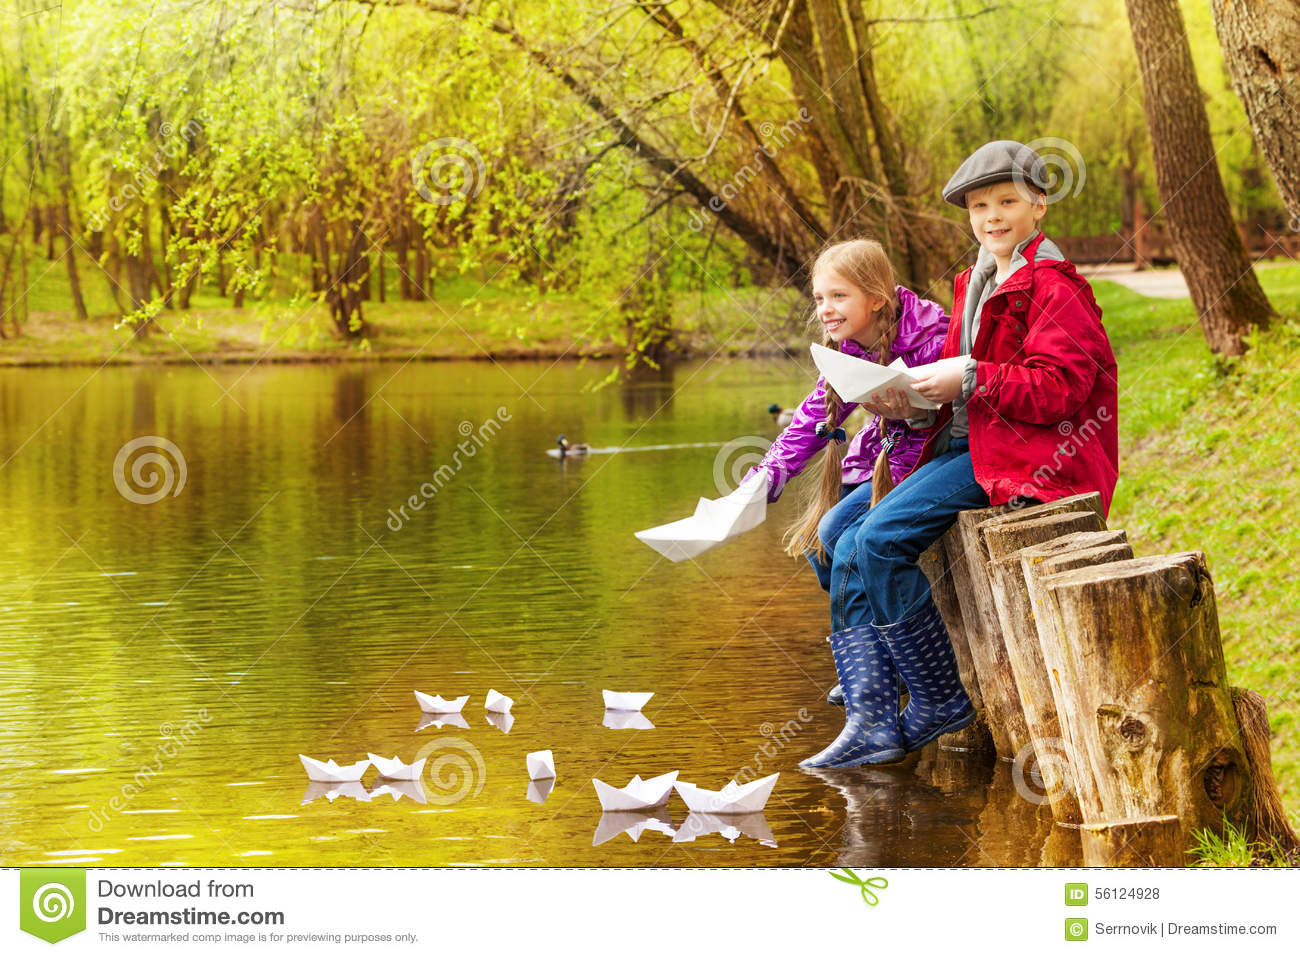 Cute Girl And Boy Play With Paper Boats On Pond Stock Photo Image